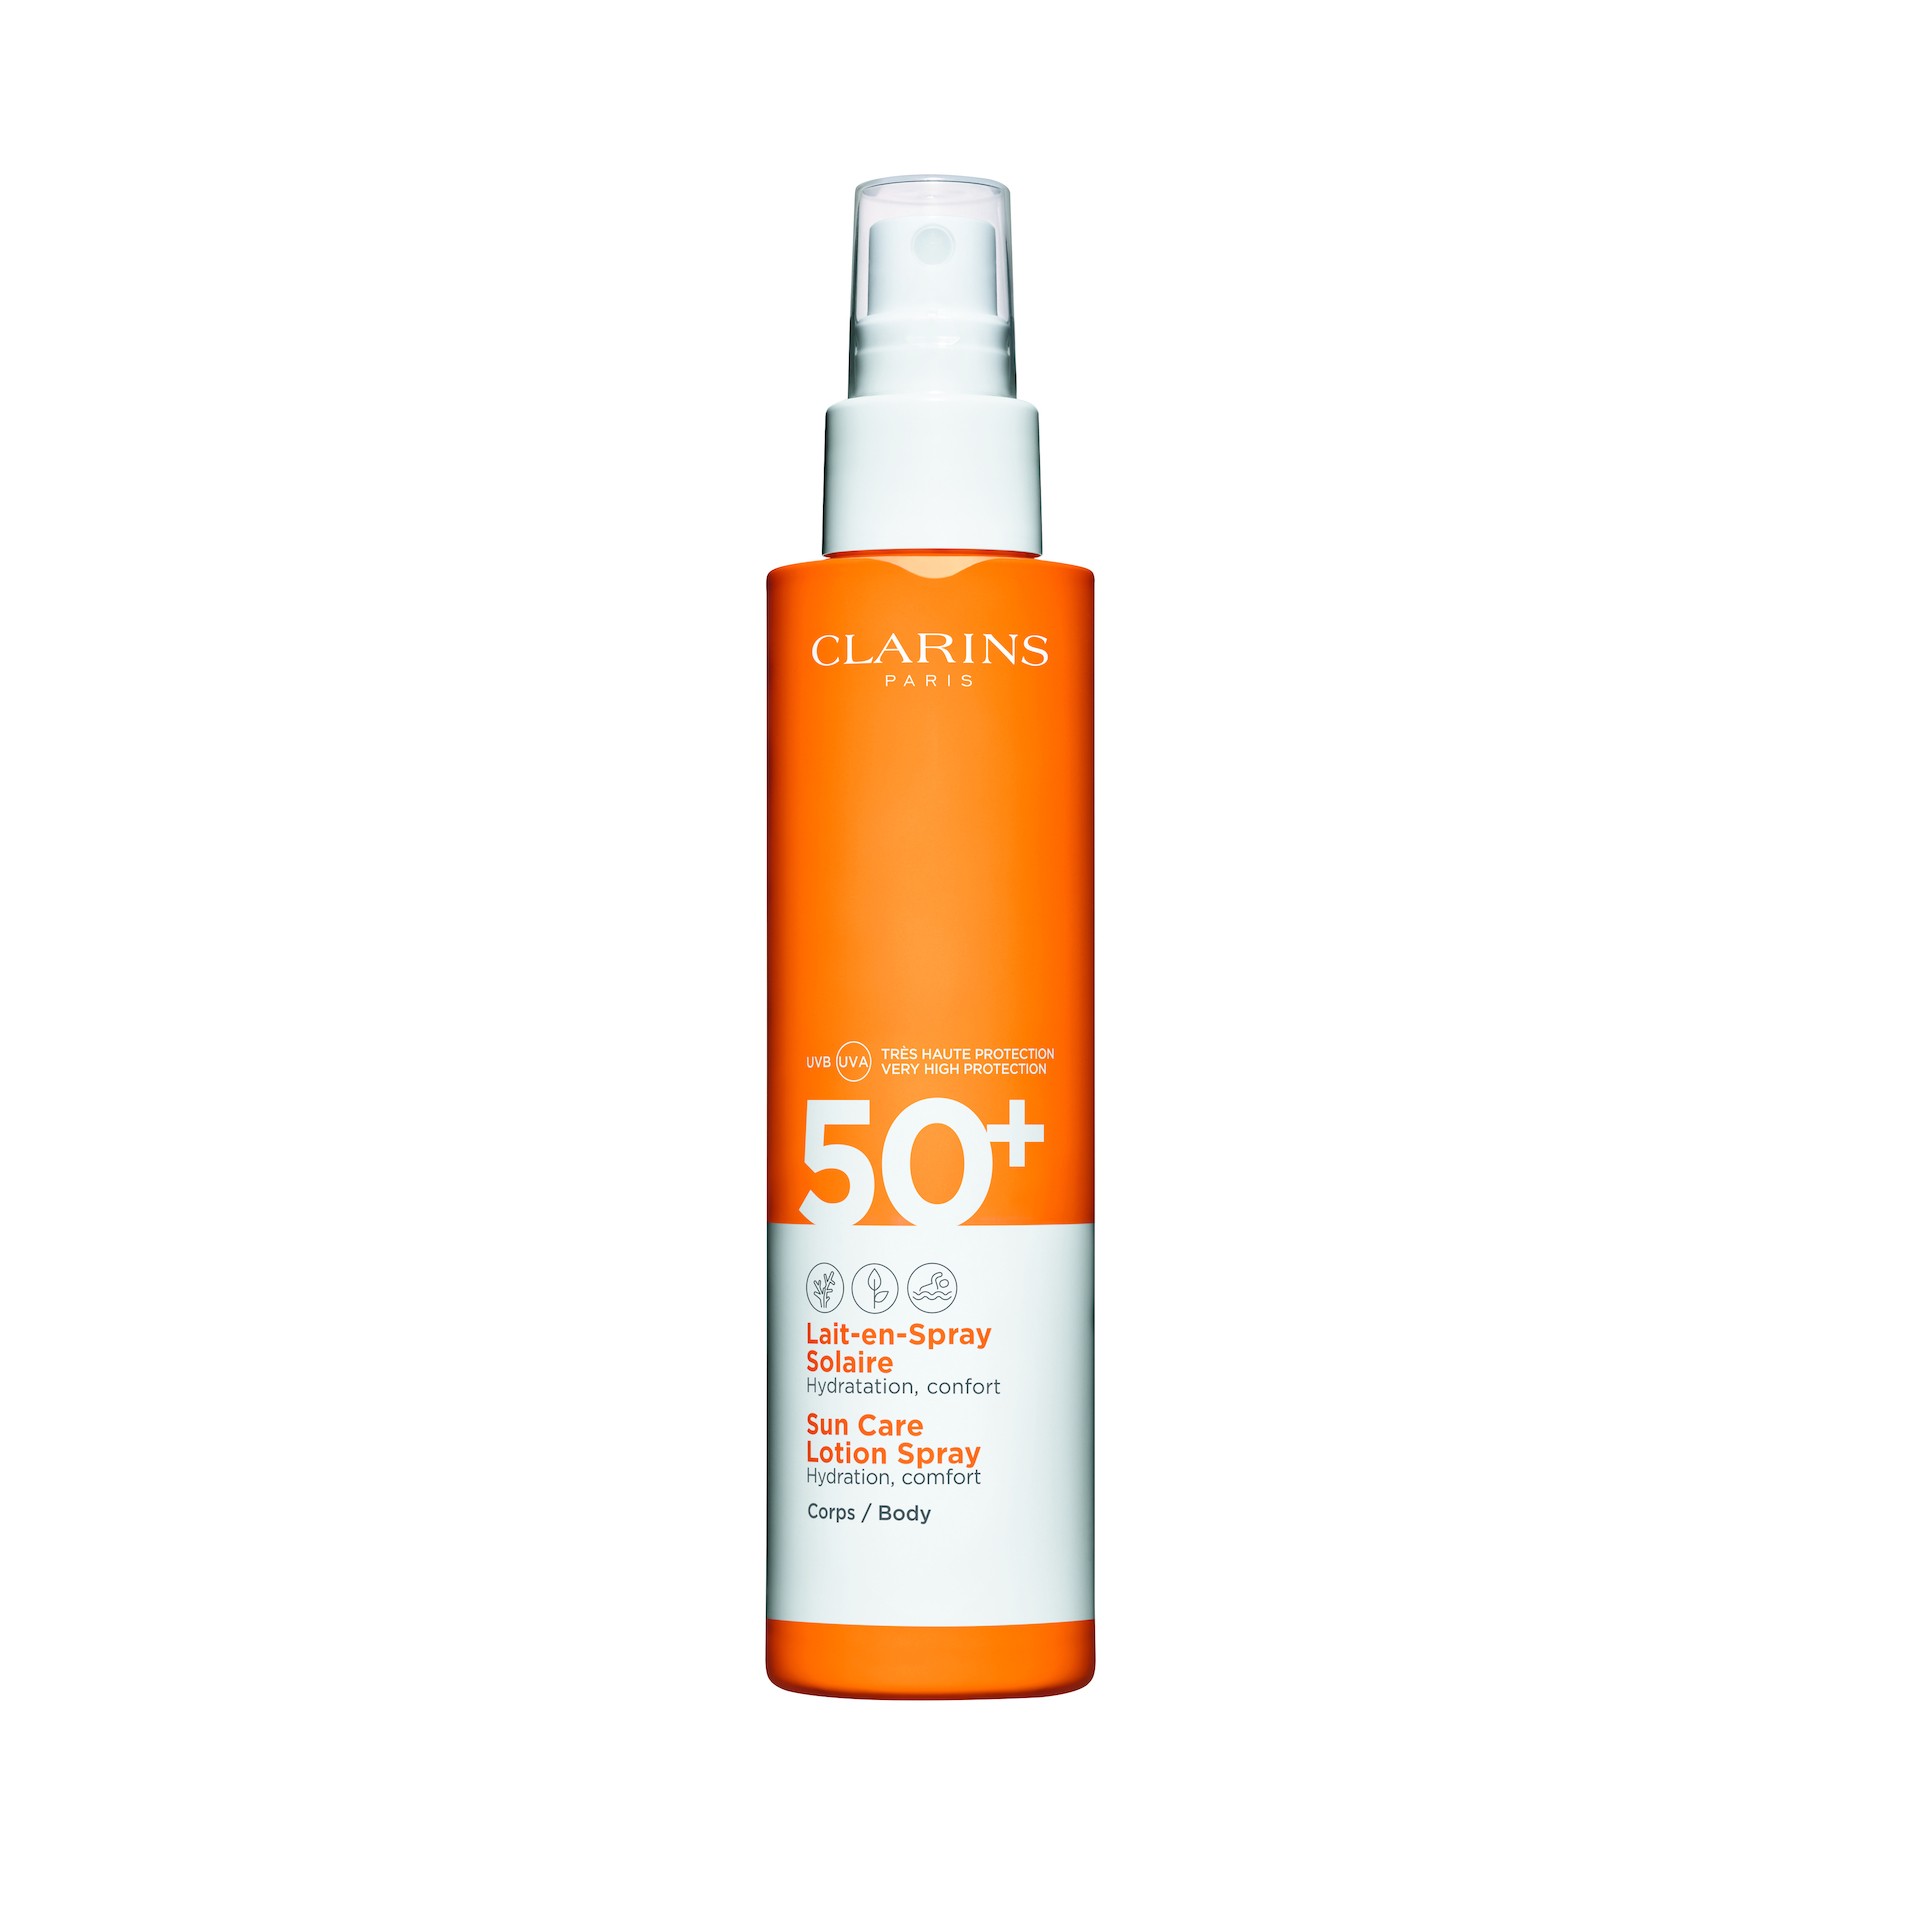 Sun Care Body Lotion Spray SPF50+